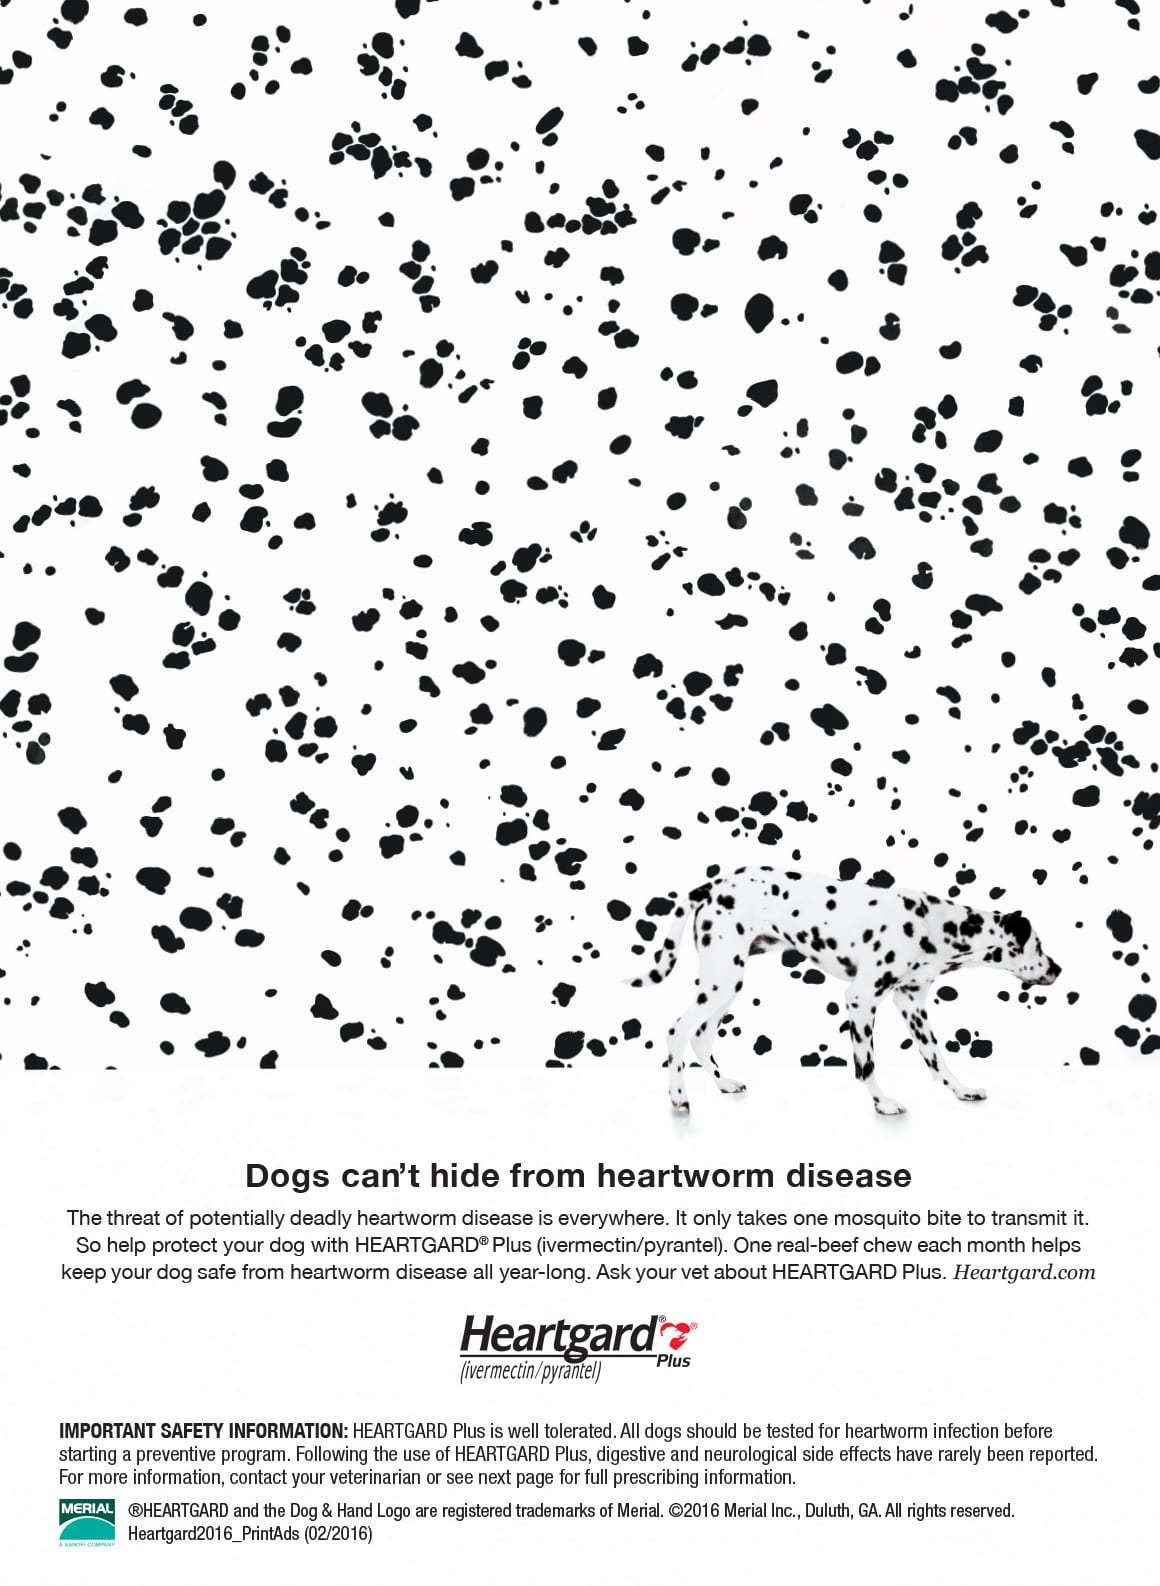 Dogs can't hide from heartworm disease